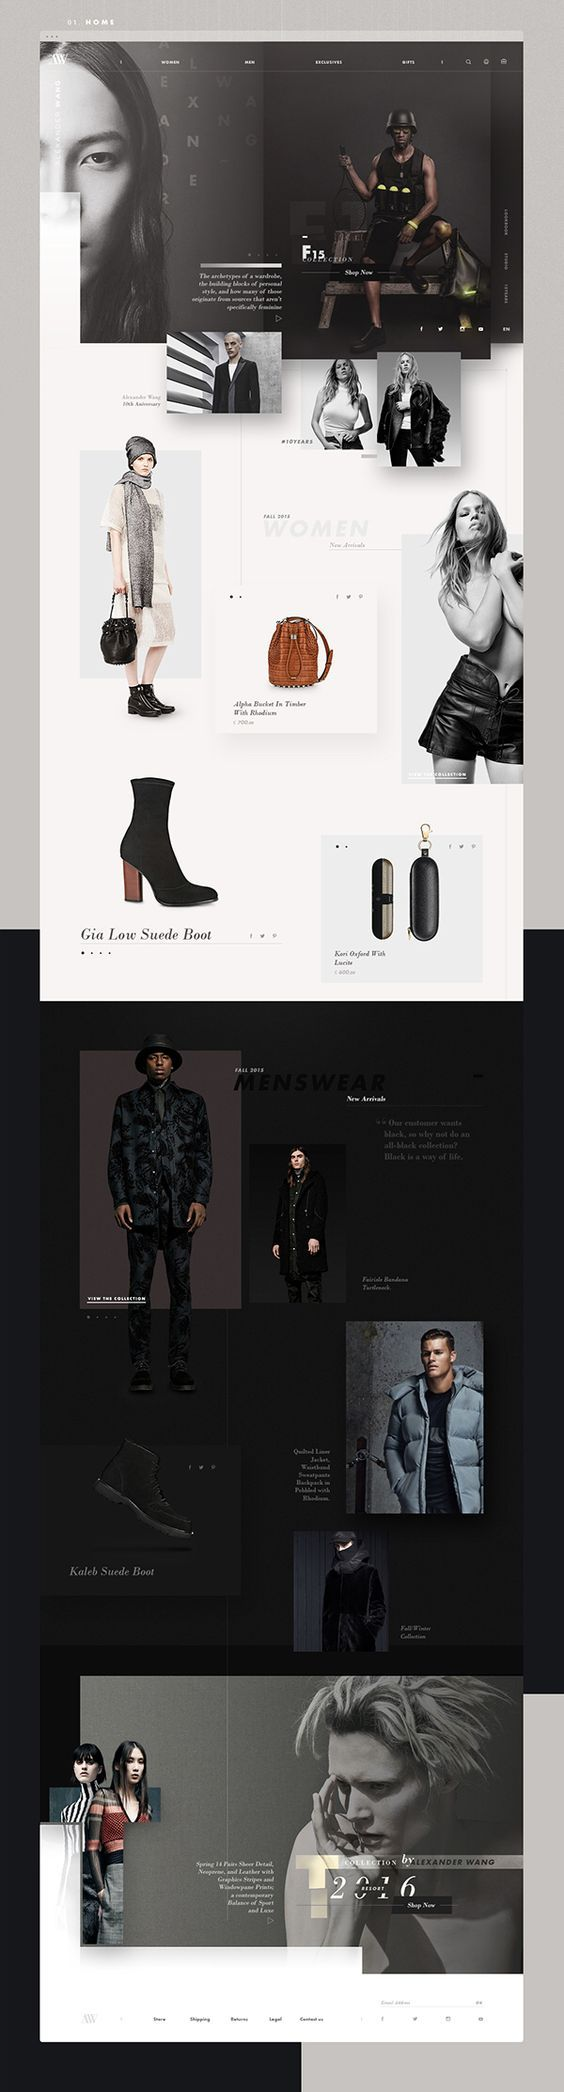 Alexander Wang Fashion Web Design by Josue Solano | Fivestar Branding Agency – Design and Branding Agency & Curated Inspiration Gallery